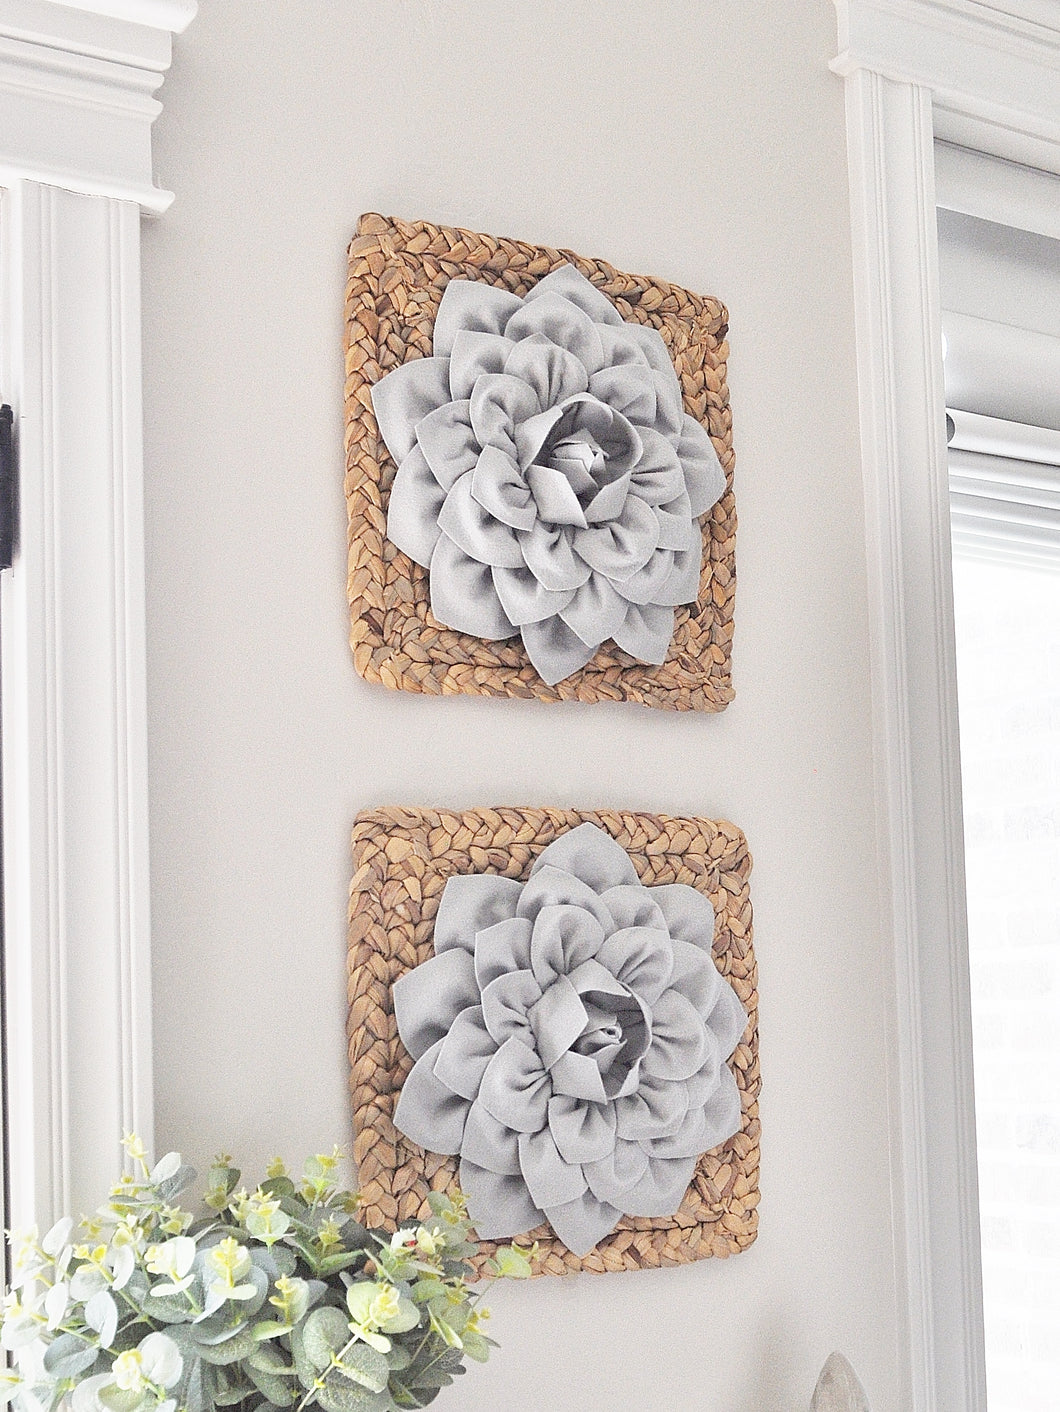 Gray Dahlia Flower on Square Hyancith Hanging Wall Decor Set - Daisy Manor